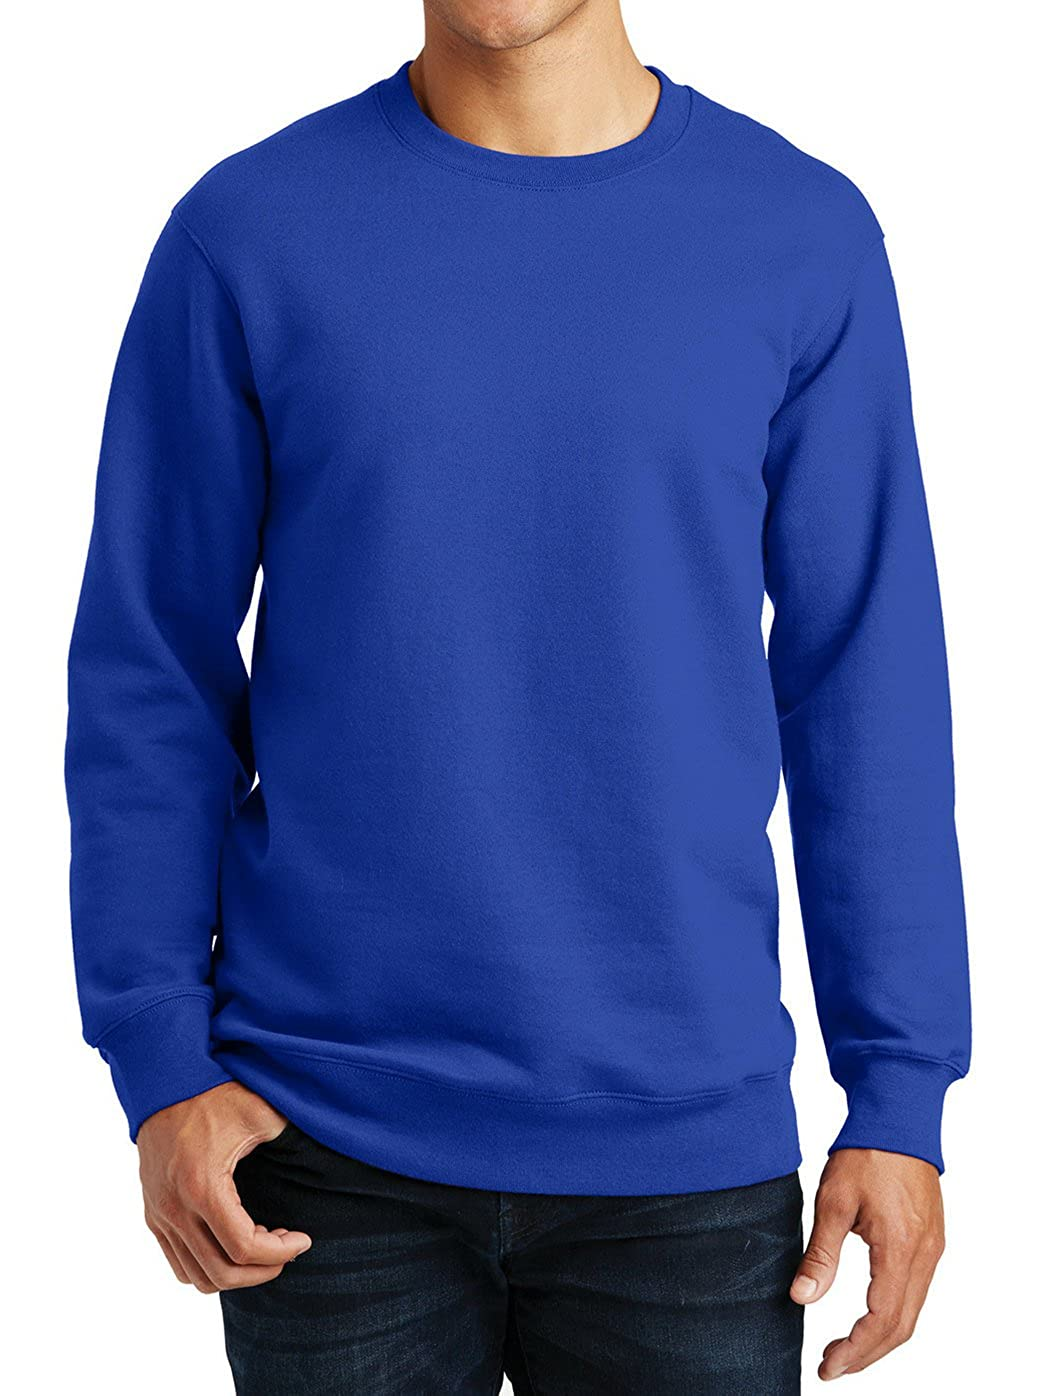 Men's Long Sleeves Fan Favorite Fleece Crewneck Sweatshirt Mafoose